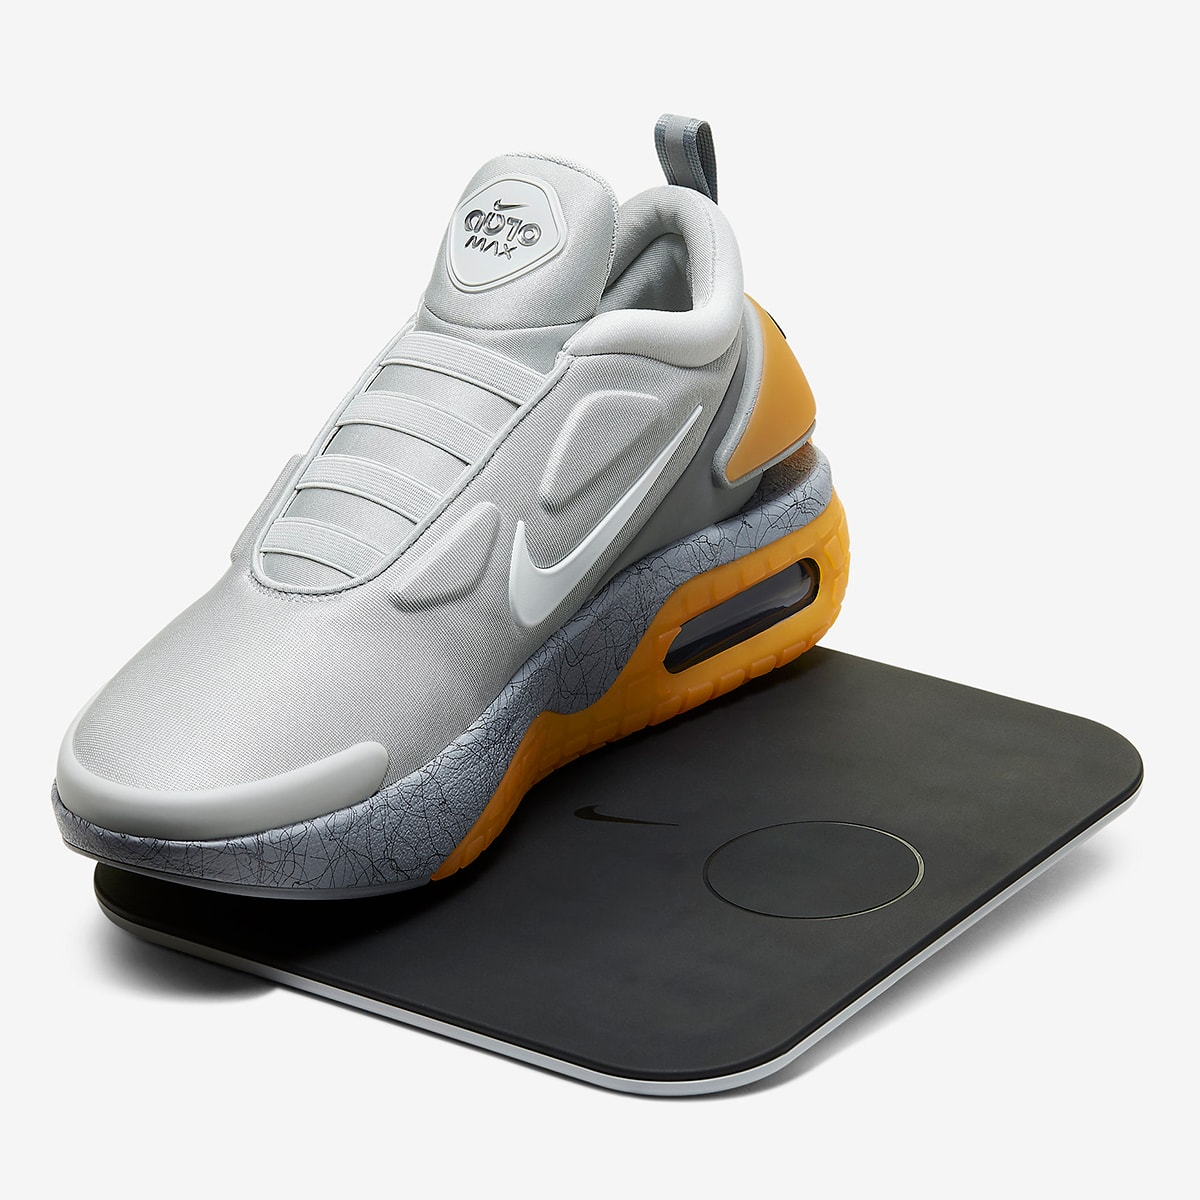 The Nike Adapt Auto Max Just Dropped in Asia | HOUSE OF HEAT